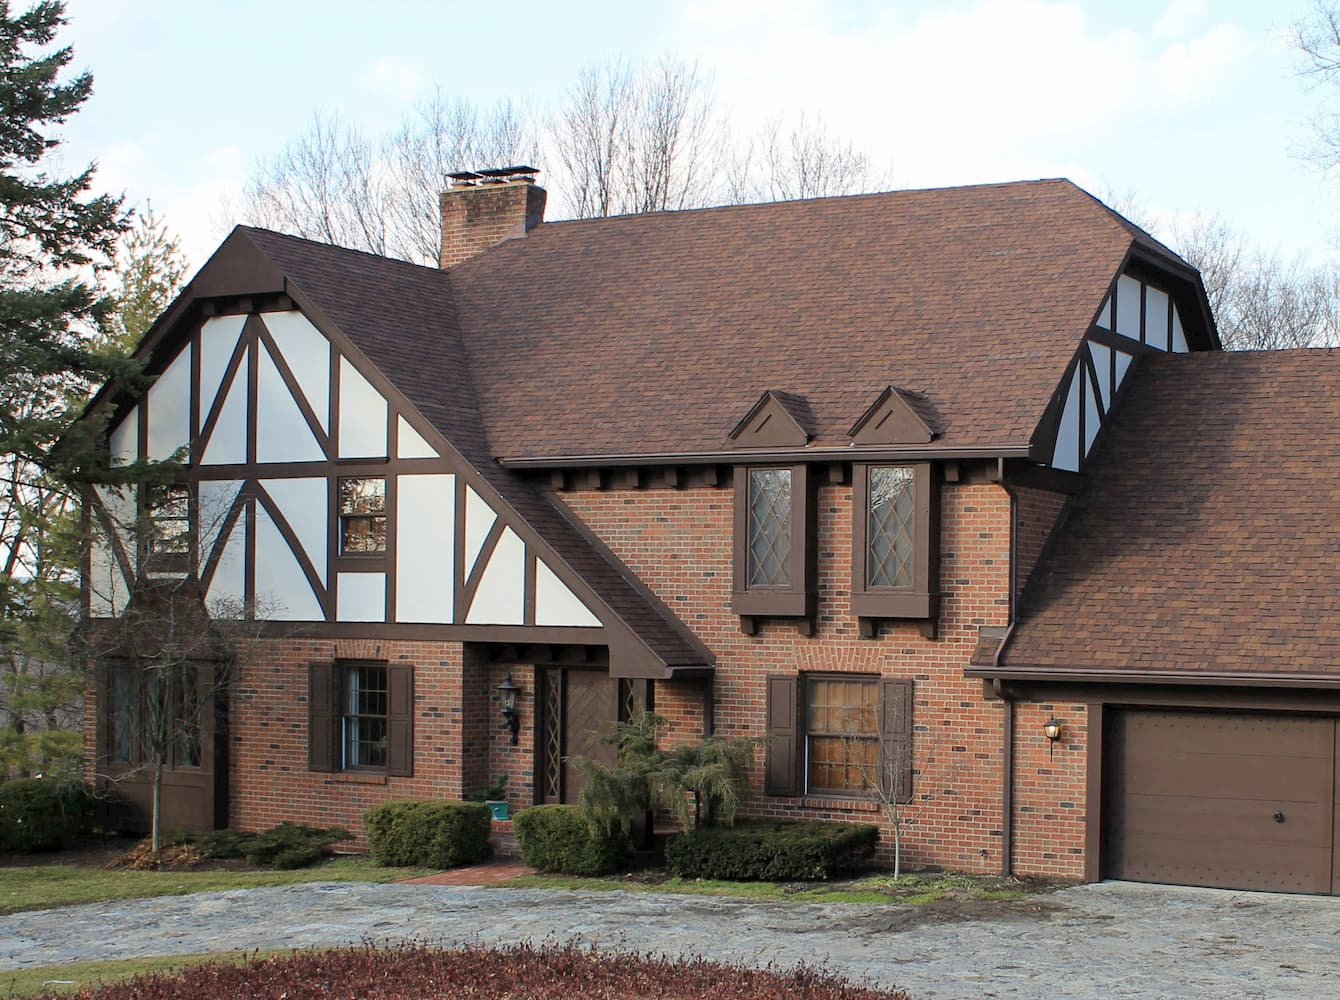 Tudor-style home in Kettering, Ohio, with all new Pella windows.